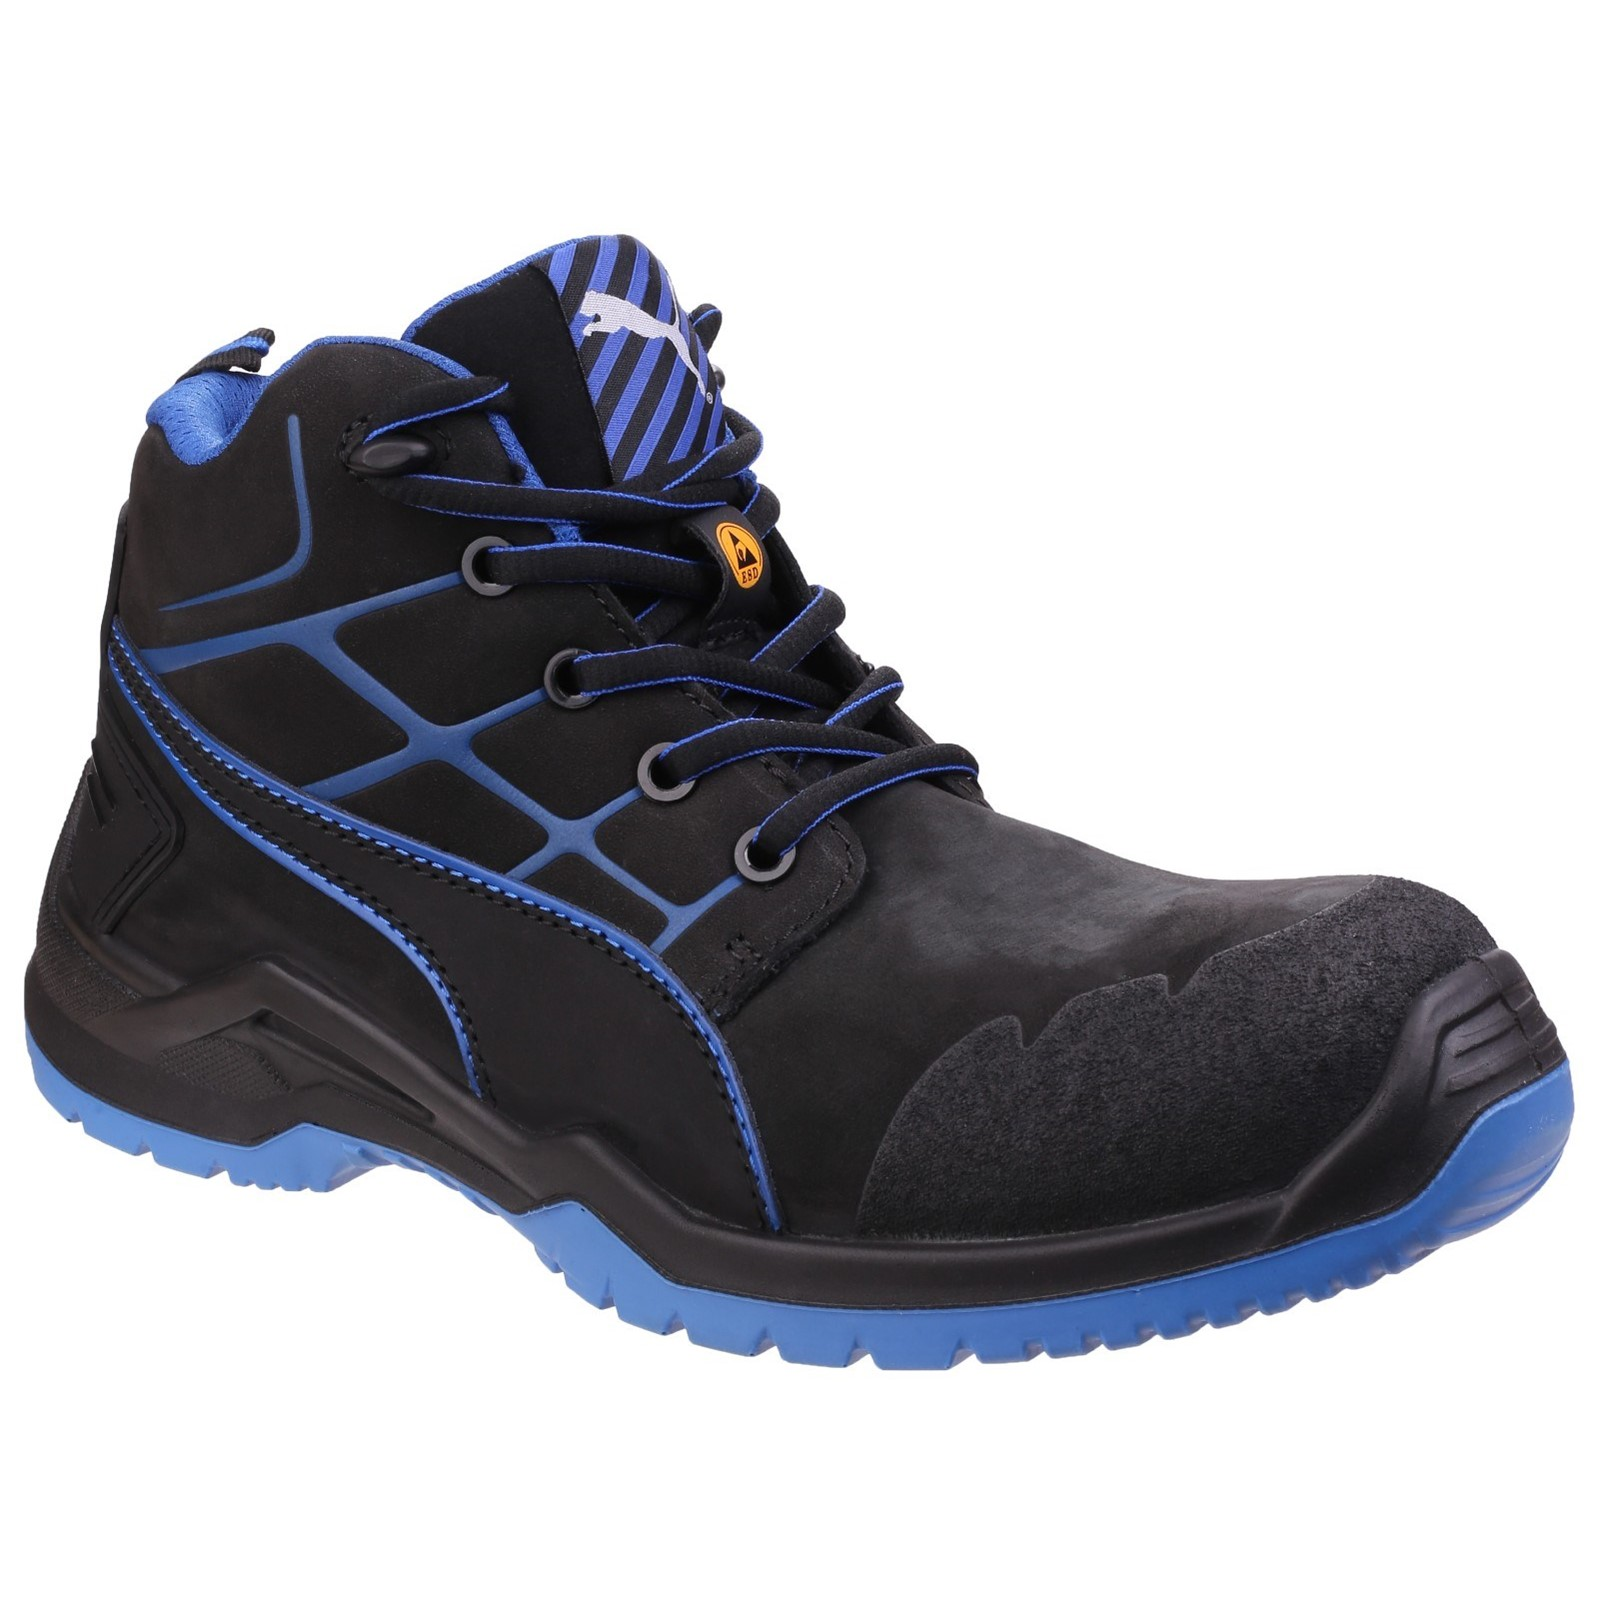 Puma Mens Krypton Lace Up Safety Boots (10 UK) (Blue)